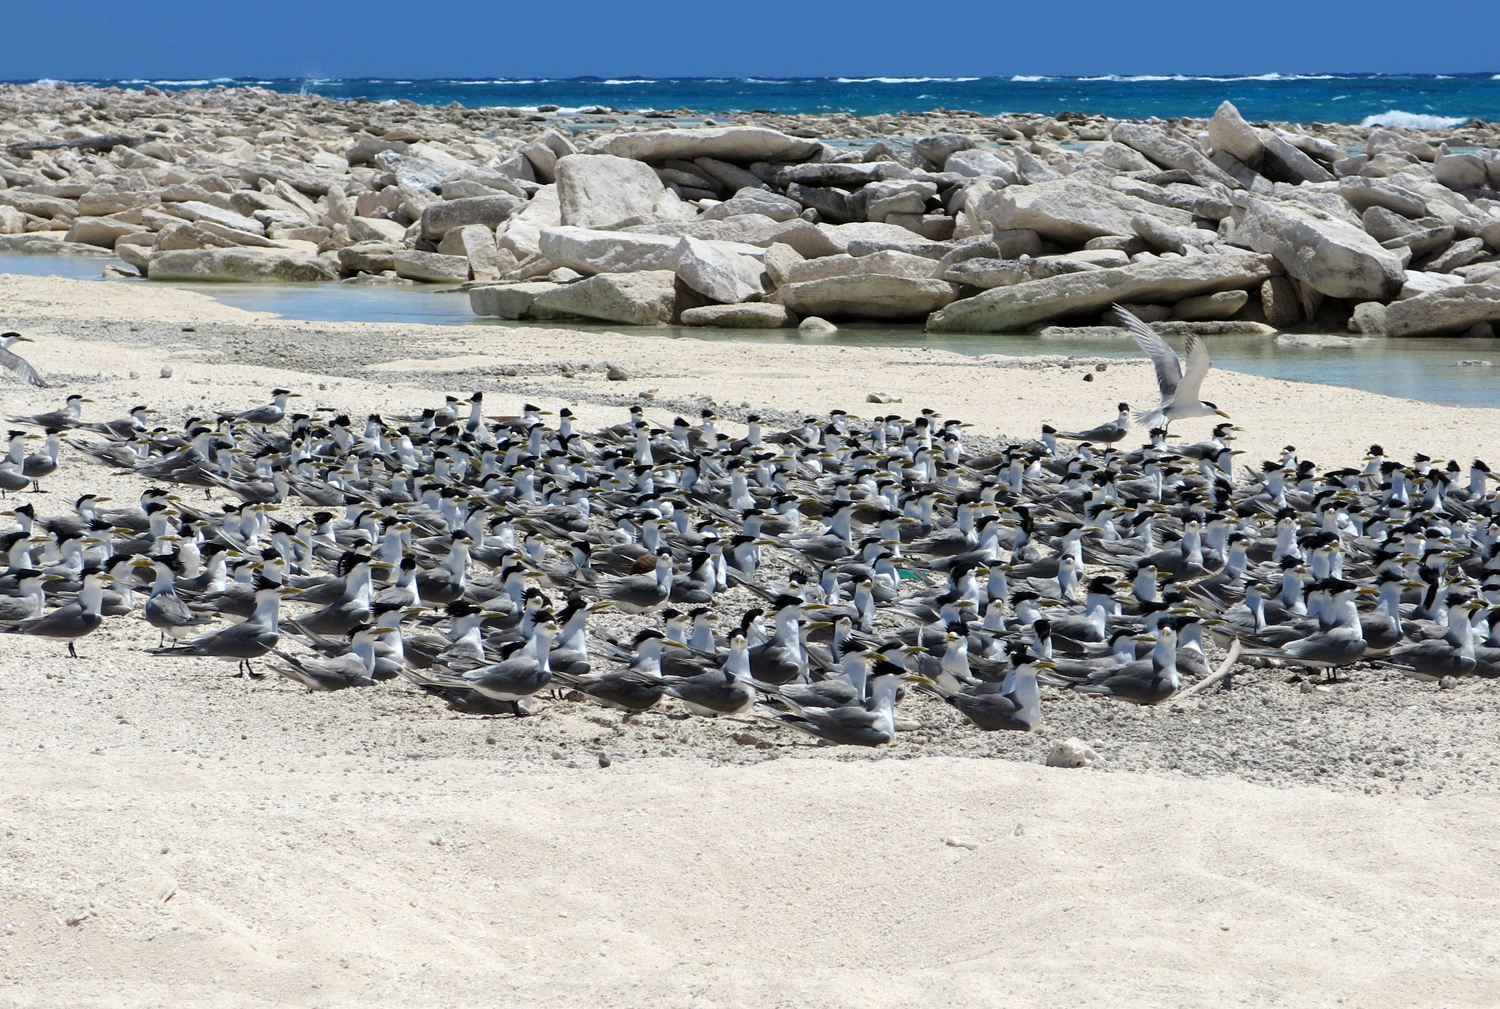 Looking SE a lethal field of coral rocks are now a huge obstacle to nesting green turtles. A large coloney of crested terns in the foreground .